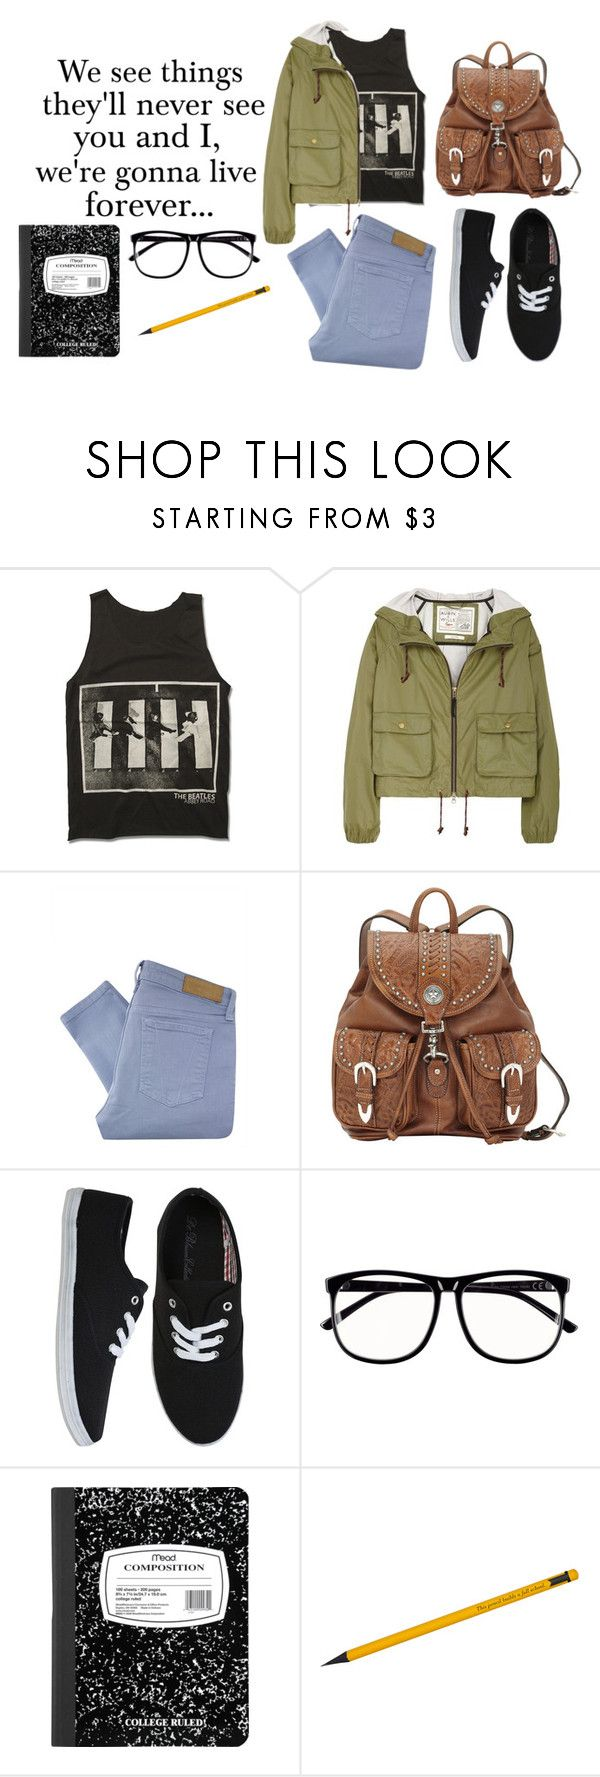 """bts Contest"" by emc1397 ❤ liked on Polyvore featuring Aubin & Wills, Victoria Beckham and H&M"